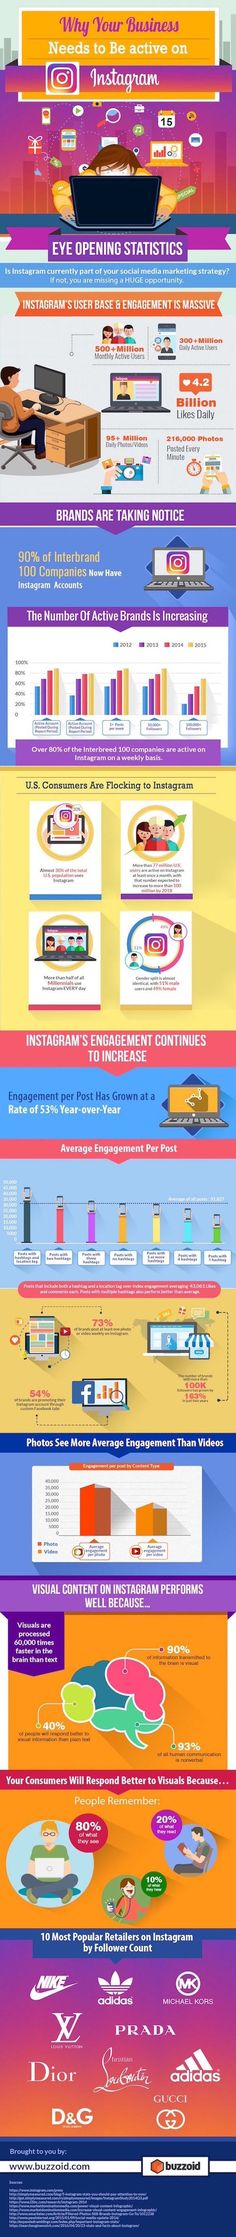 The Benefits of Marketing Your Business on Instagram (Infographic)